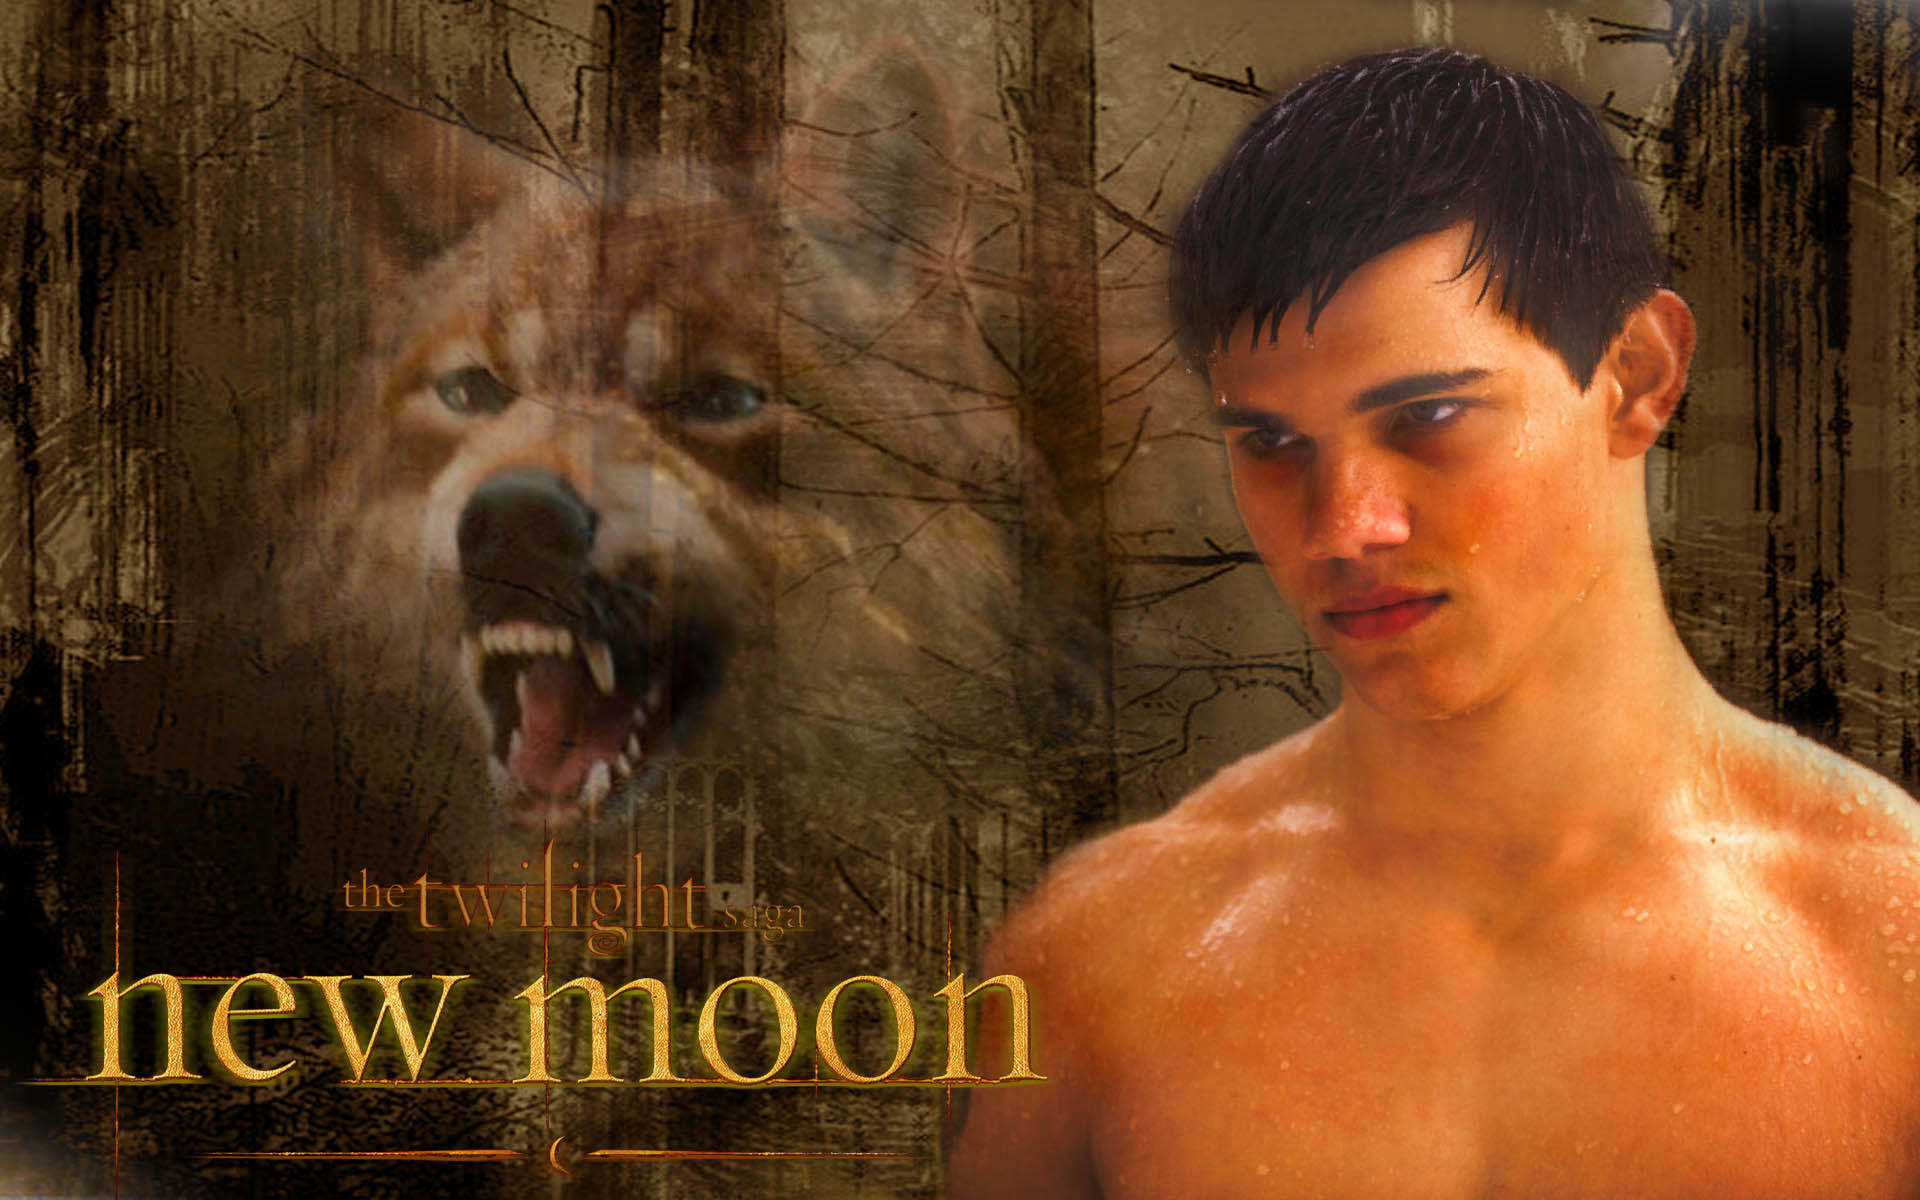 Jacob new moon naked